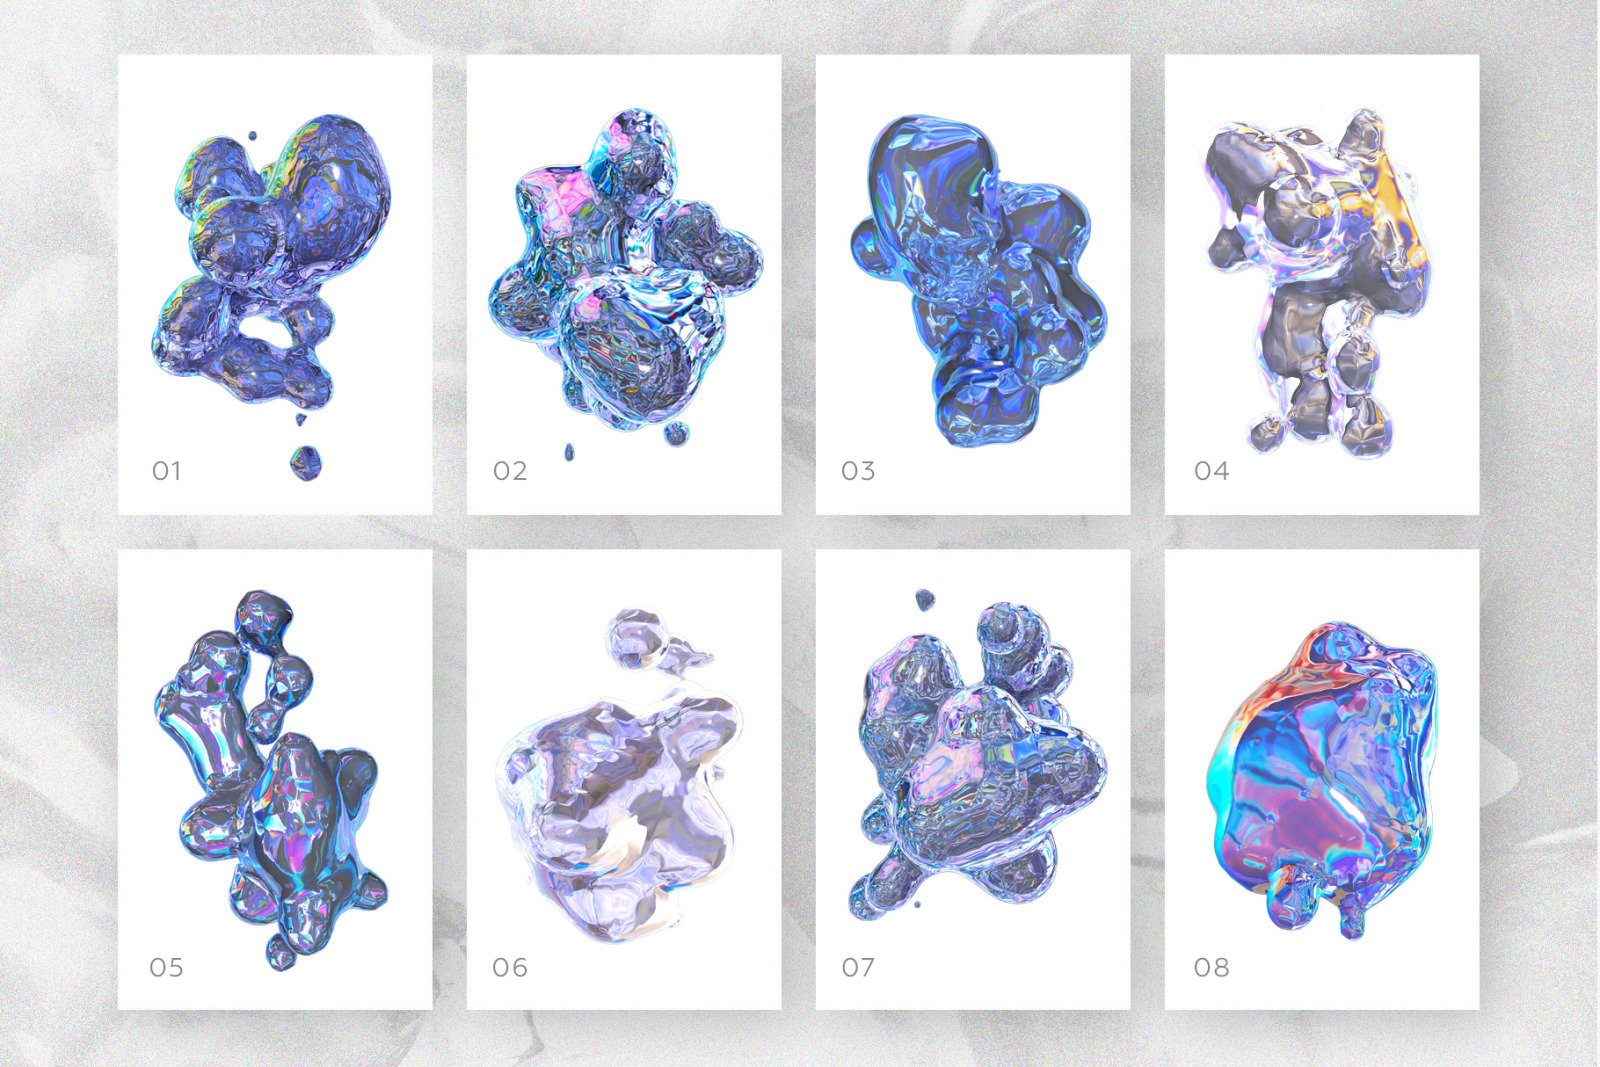 23 HOLOGRAPHIC SHAPES